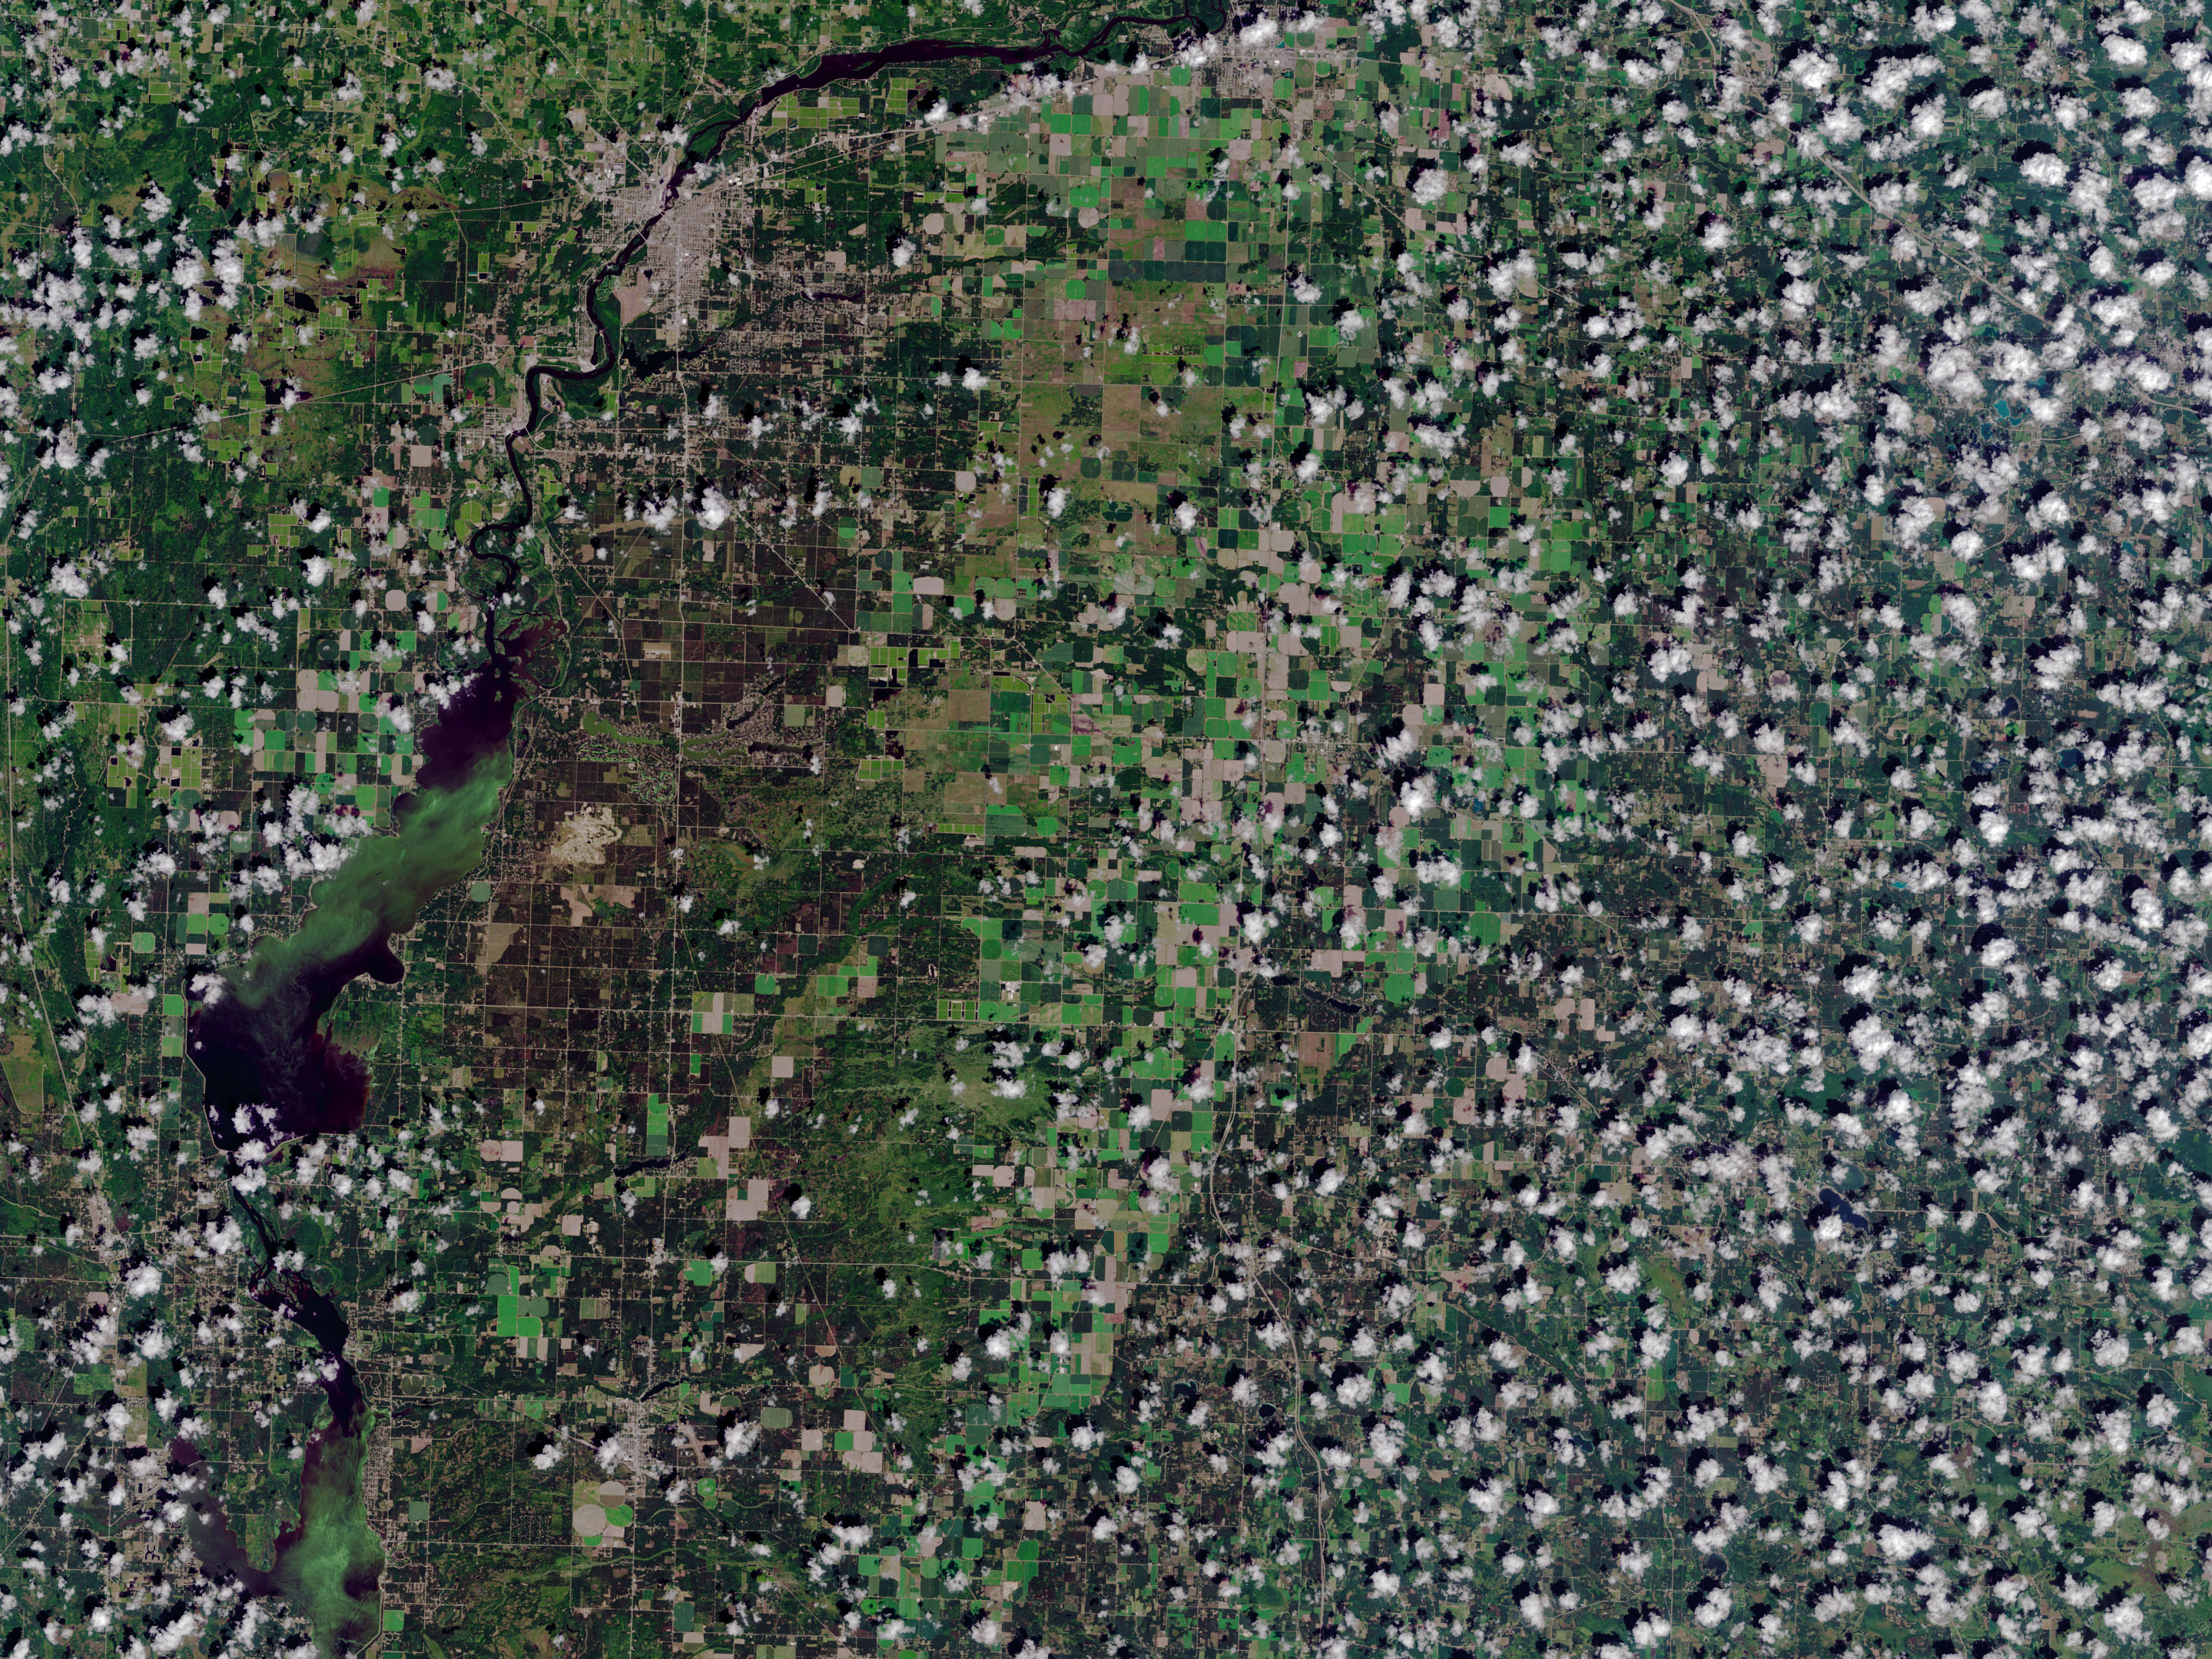 NASA Helps Warn of Harmful Algae in Lakes, Reservoirs - related image preview